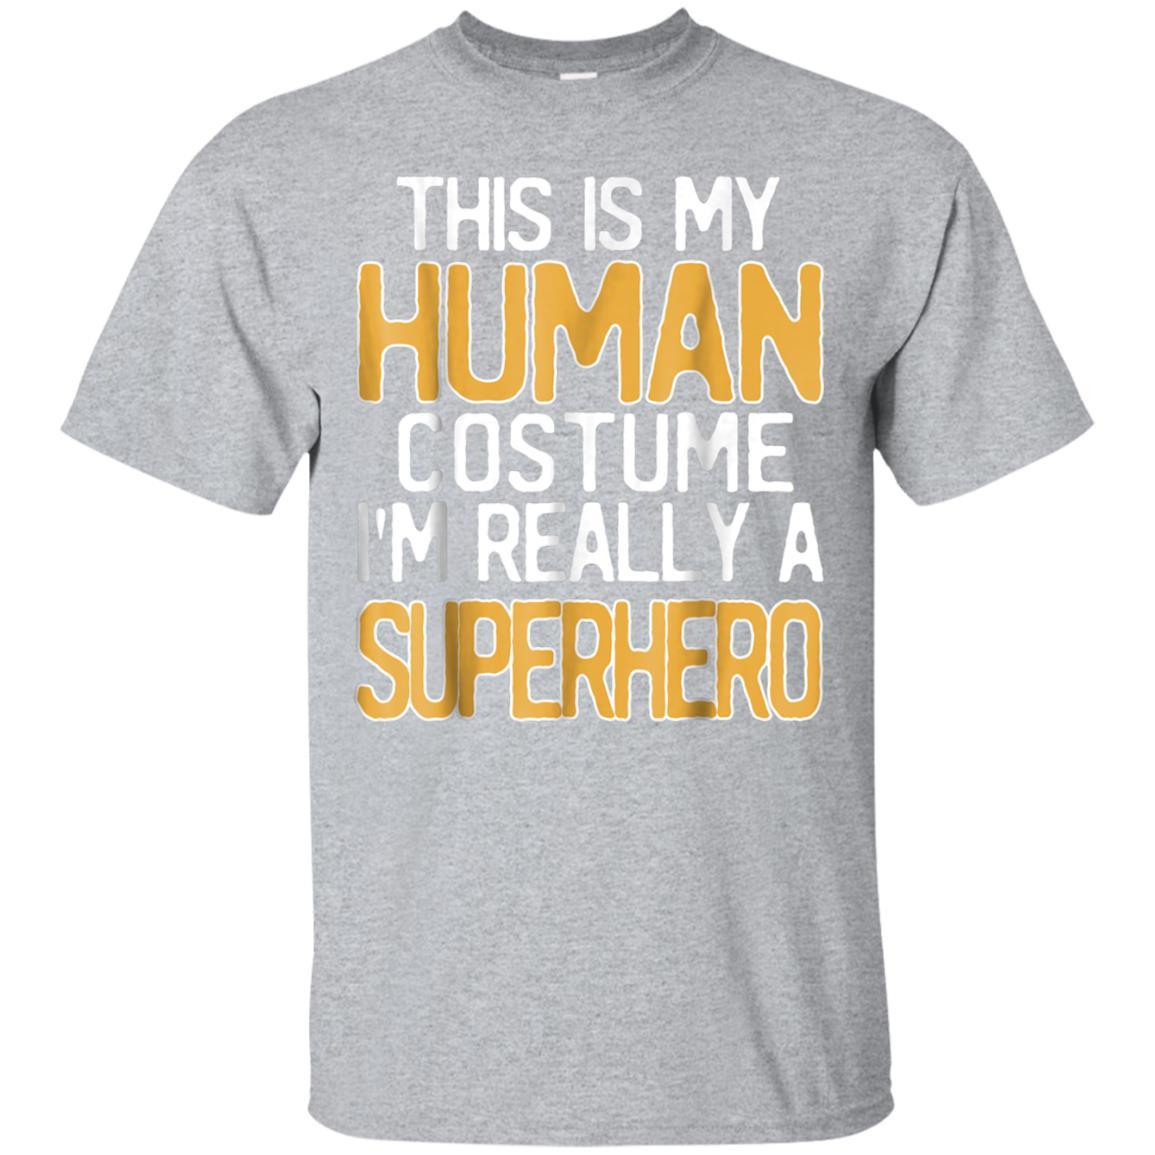 This Is My Human Costume I'm Really A Superhero T-Shirt 99promocode